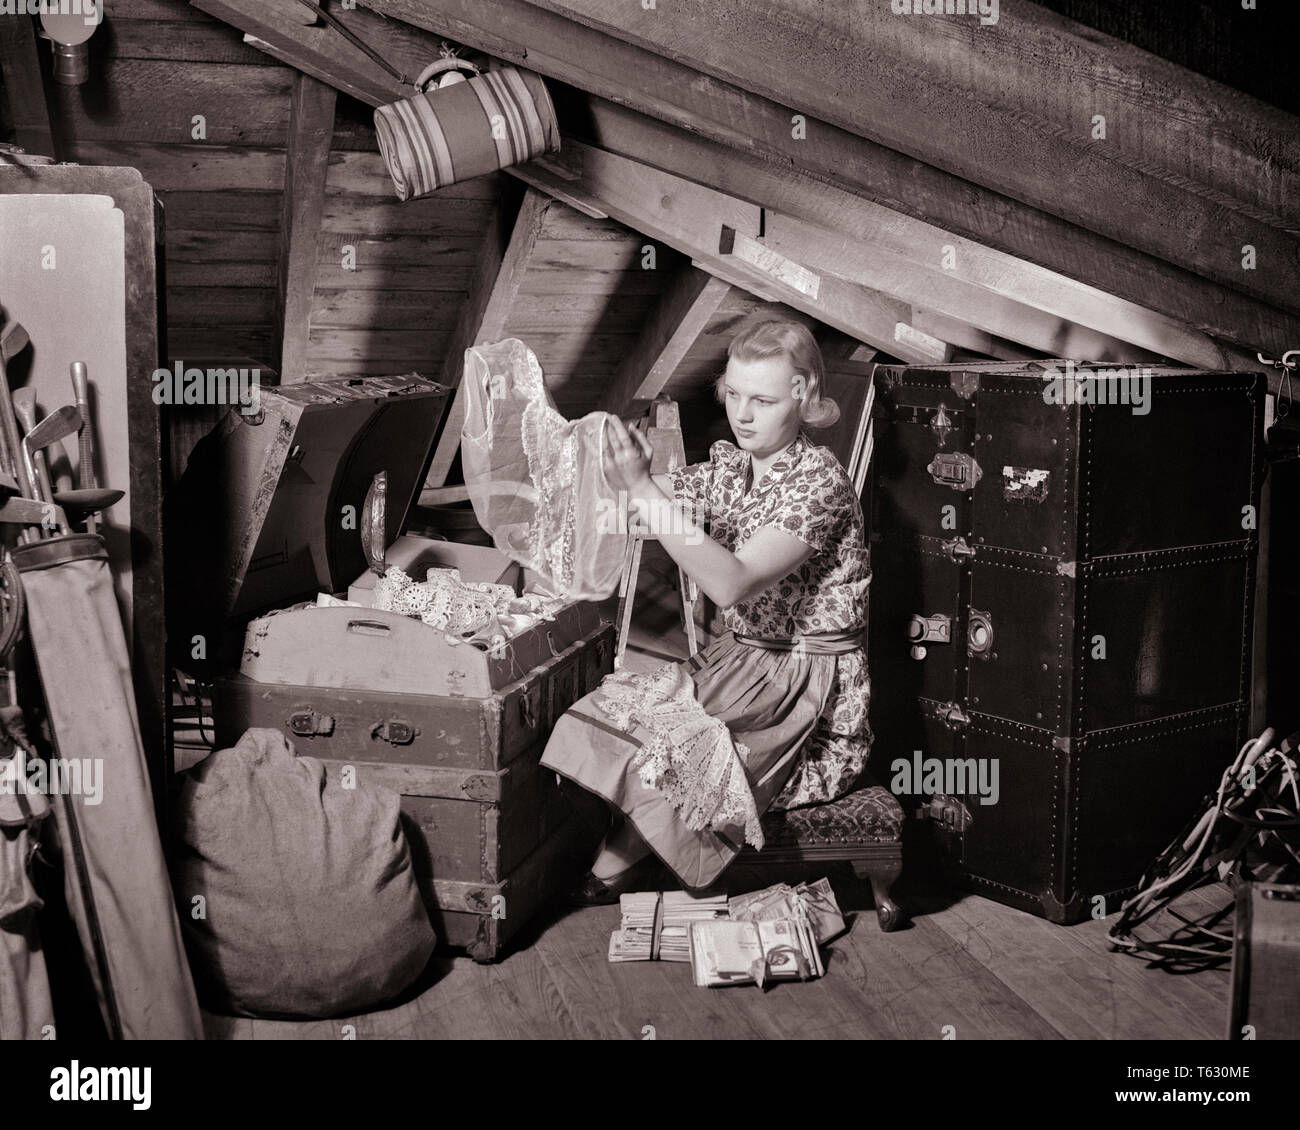 1930s 1940s WOMAN IN CLUTTERED ATTIC WEARING APRON LOOKING THROUGH TRUNK OF OLD CLOTHES LINENS - s7466 HAR001 HARS ATTIC CONNECTION KEEP CLUTTERED LINENS THINGS POSSESSIONS STUFF CLUTTER MEMORIES TRUNKS YOUNG ADULT WOMAN BLACK AND WHITE CAUCASIAN ETHNICITY HAR001 OLD FASHIONED PRESERVE SAVED SOUVENIRS - Stock Image